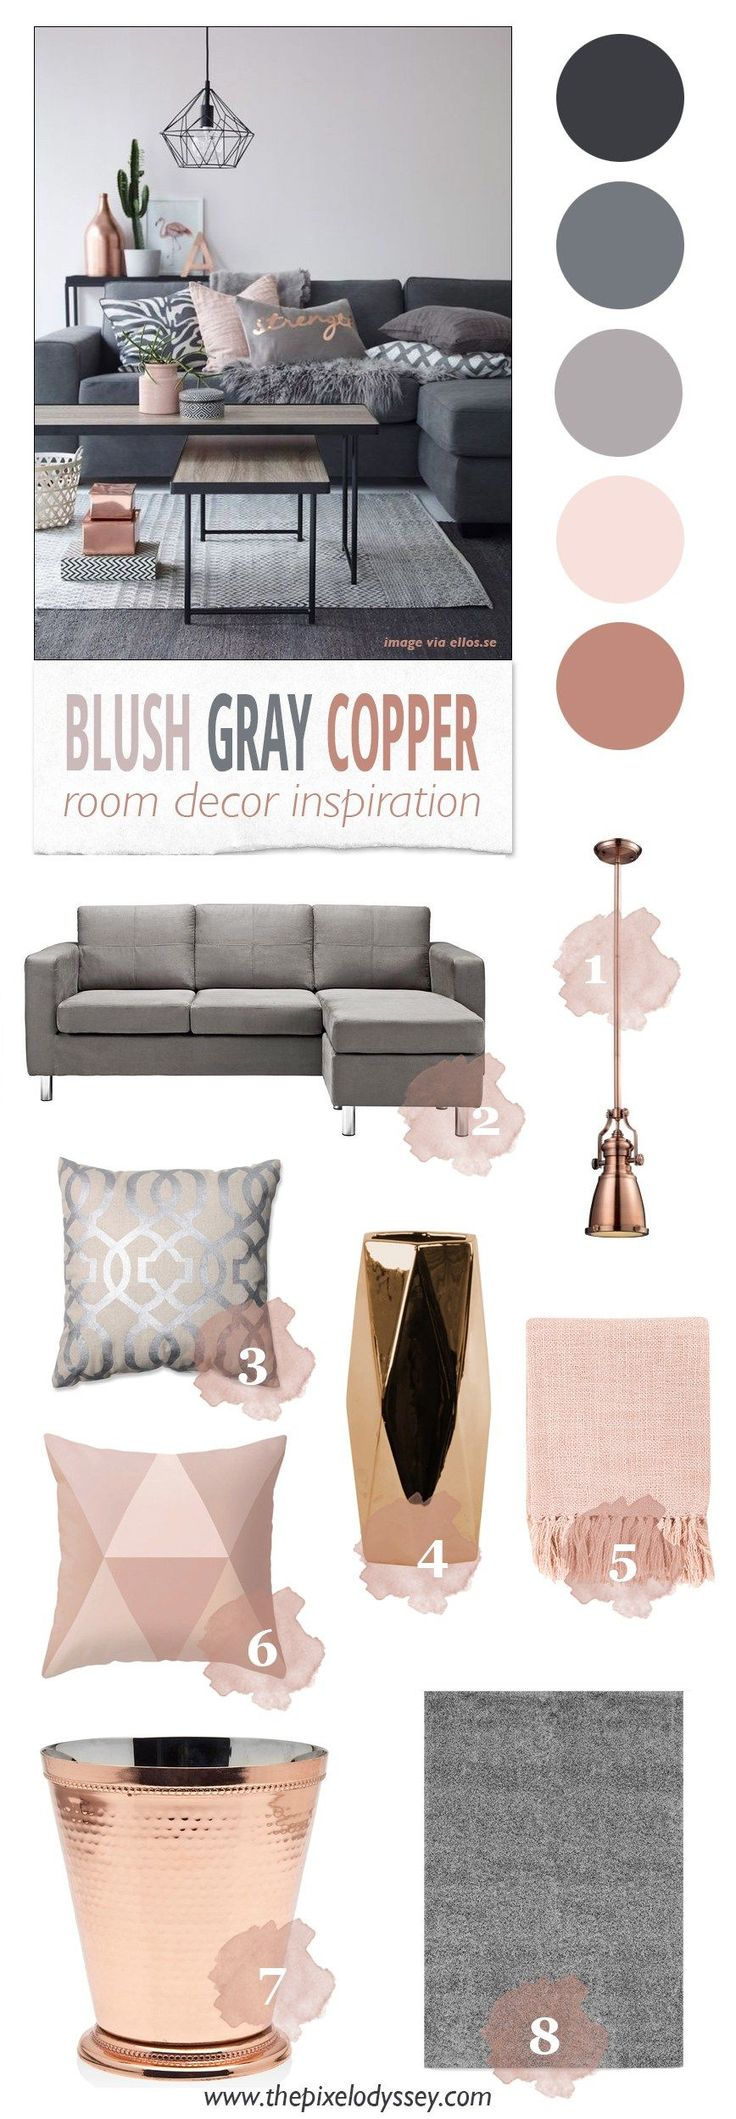 best 25+ grey room decor ideas on pinterest | grey room, grey